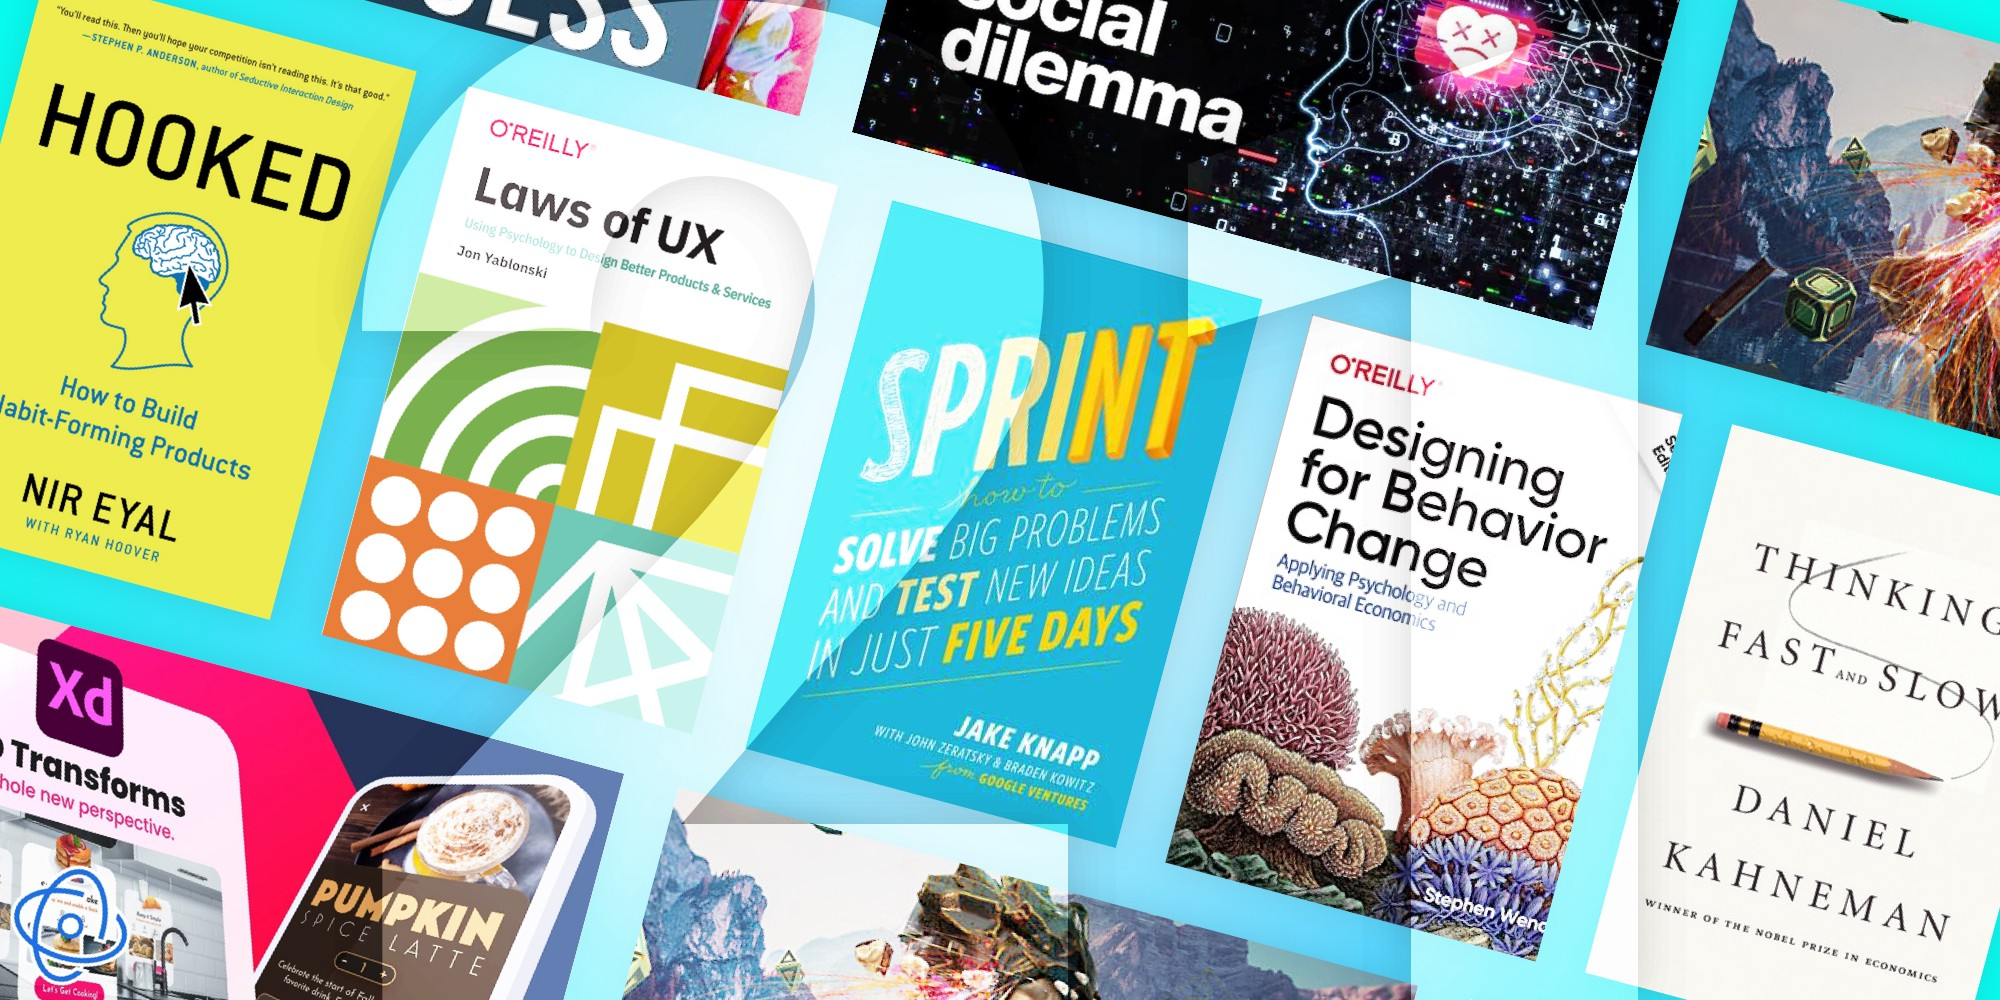 An montage of different UX books and resources